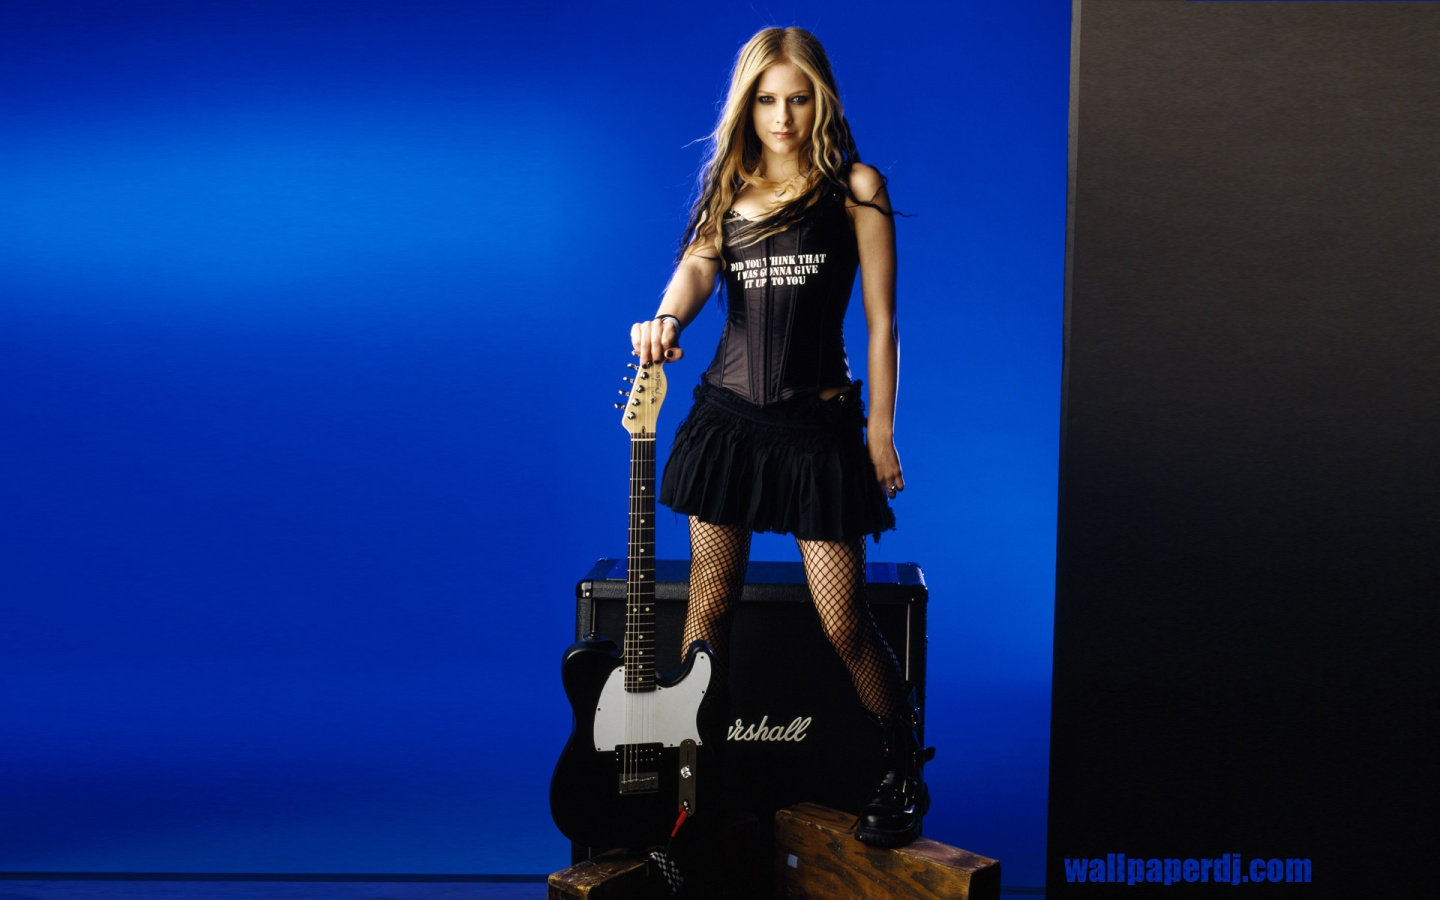 1440x900 Avril Lavigne Wallpaper Music And Dance Wallpapers